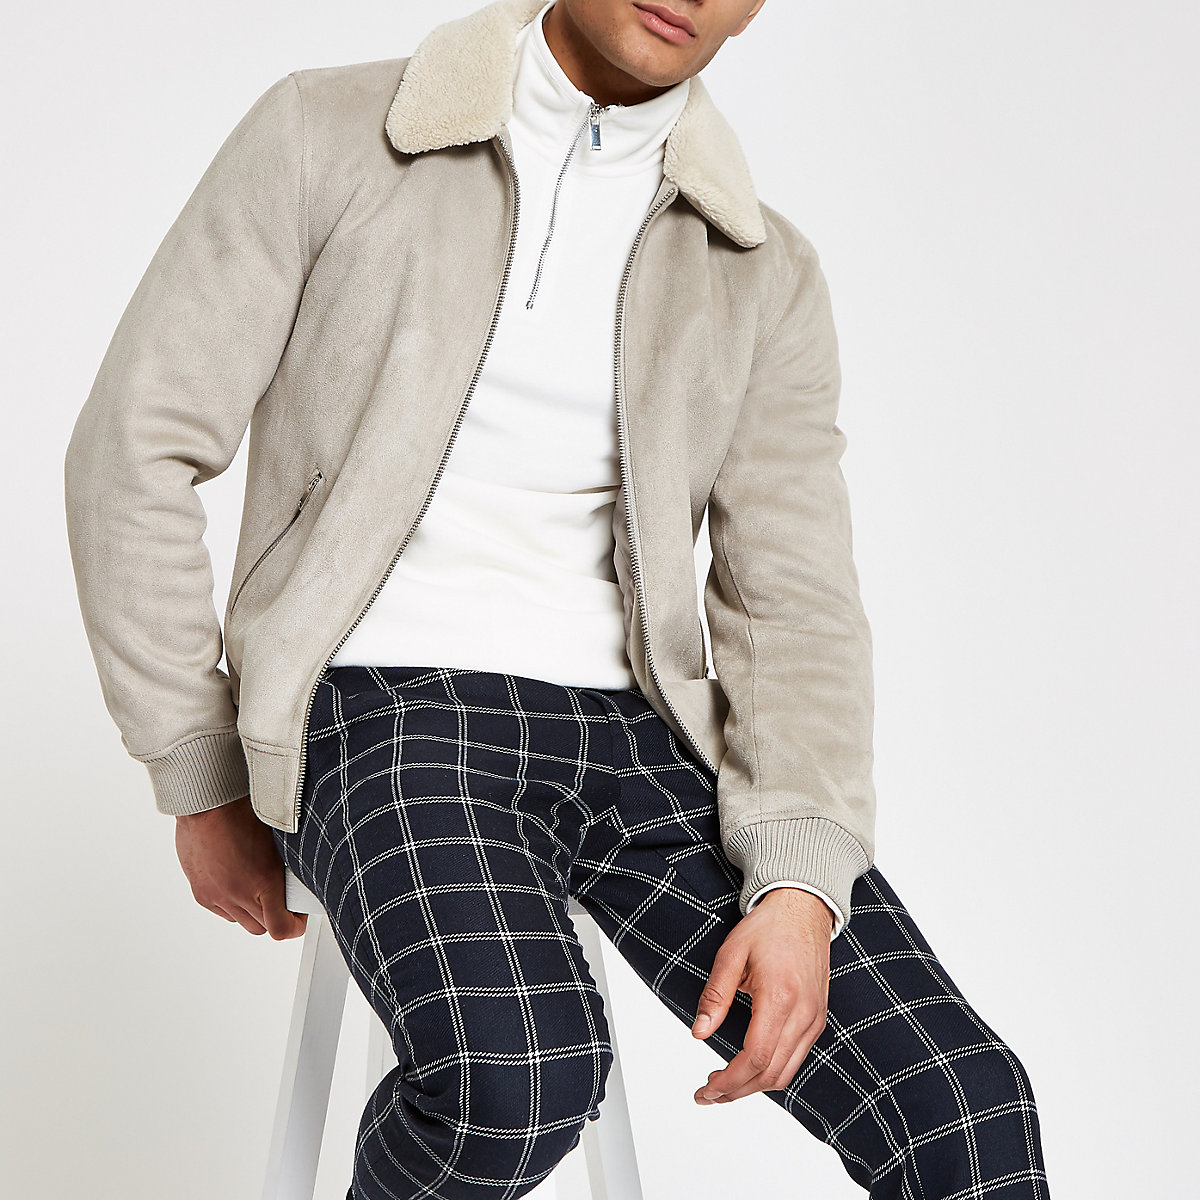 Olly Murs faux suede borg collar jacket